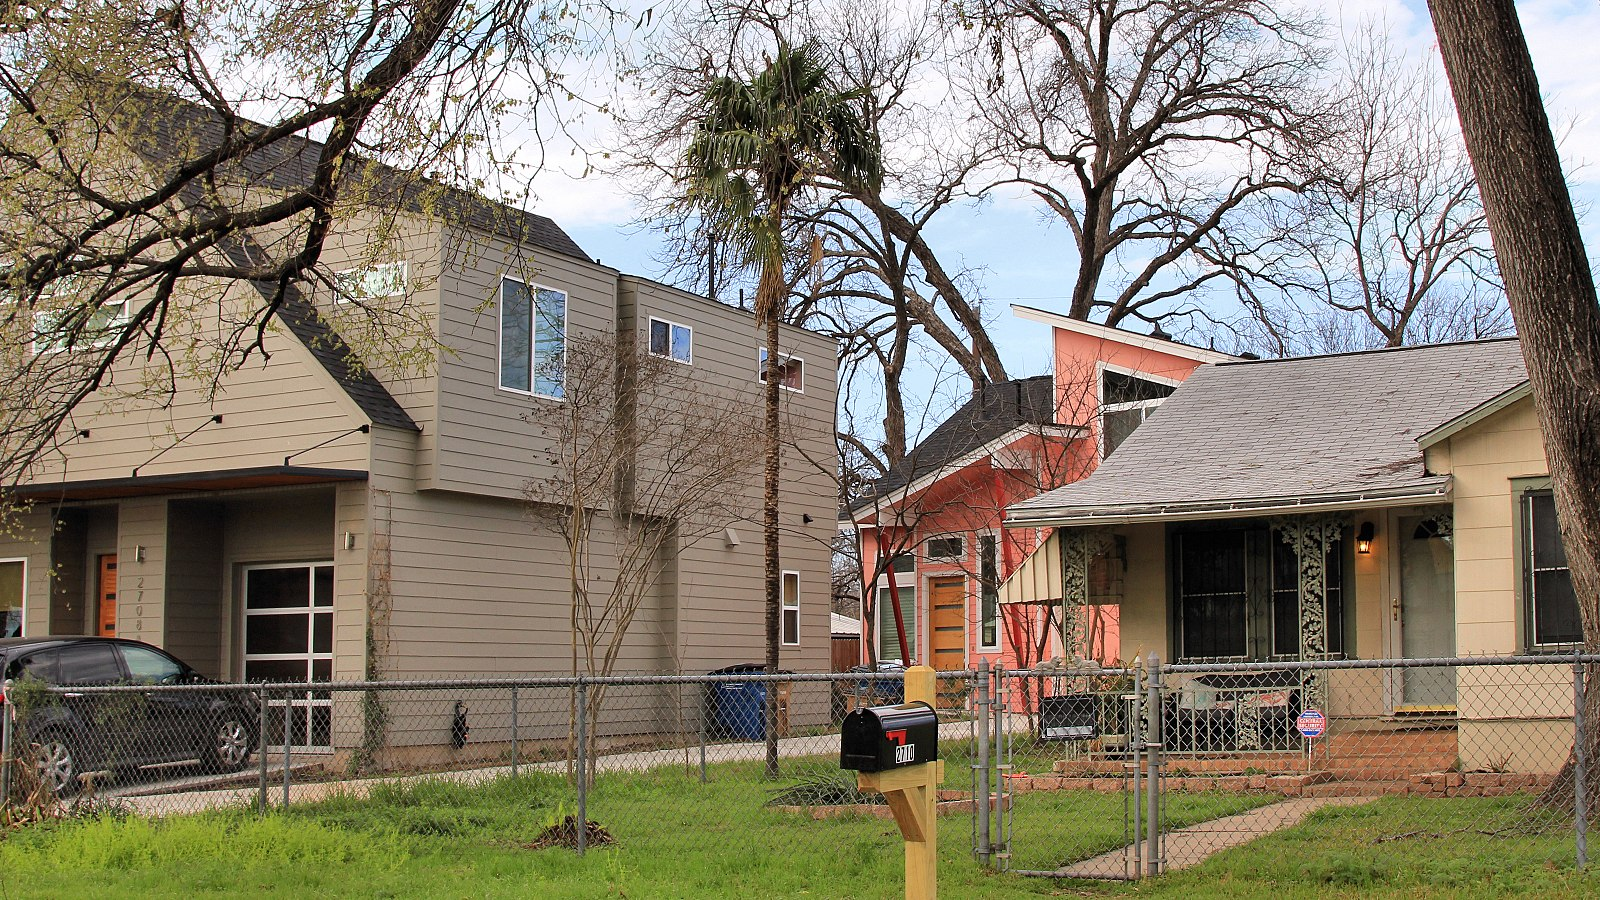 In East Austin, gentrification has displaced the African American and Latinx communities. Notice the changing housing stock.